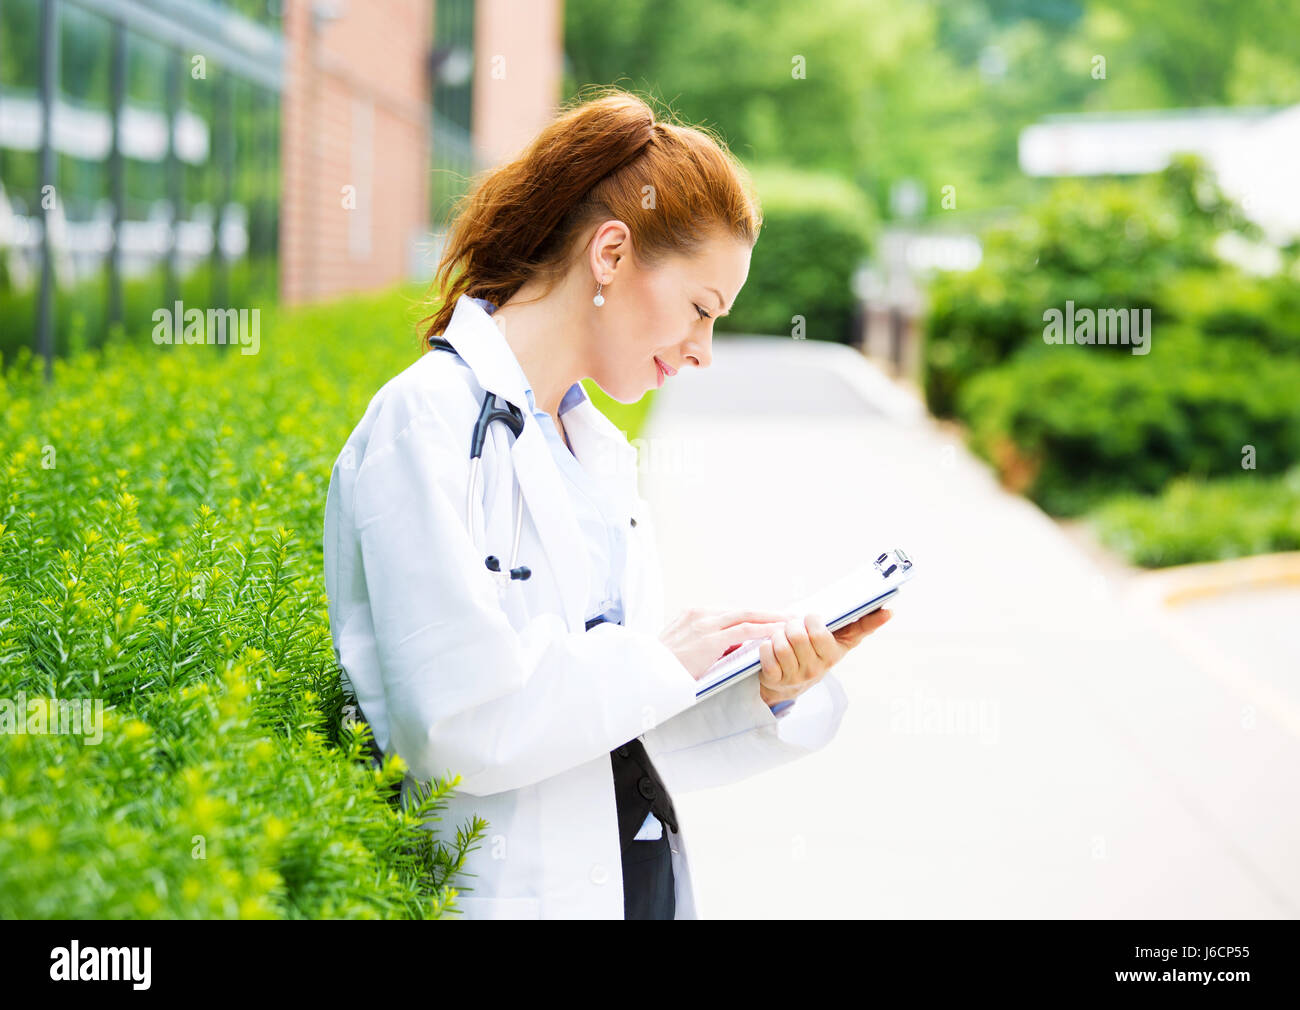 Portrait, young confident female doctor, healthcare professional reading patient chart isolated background outside - Stock Image